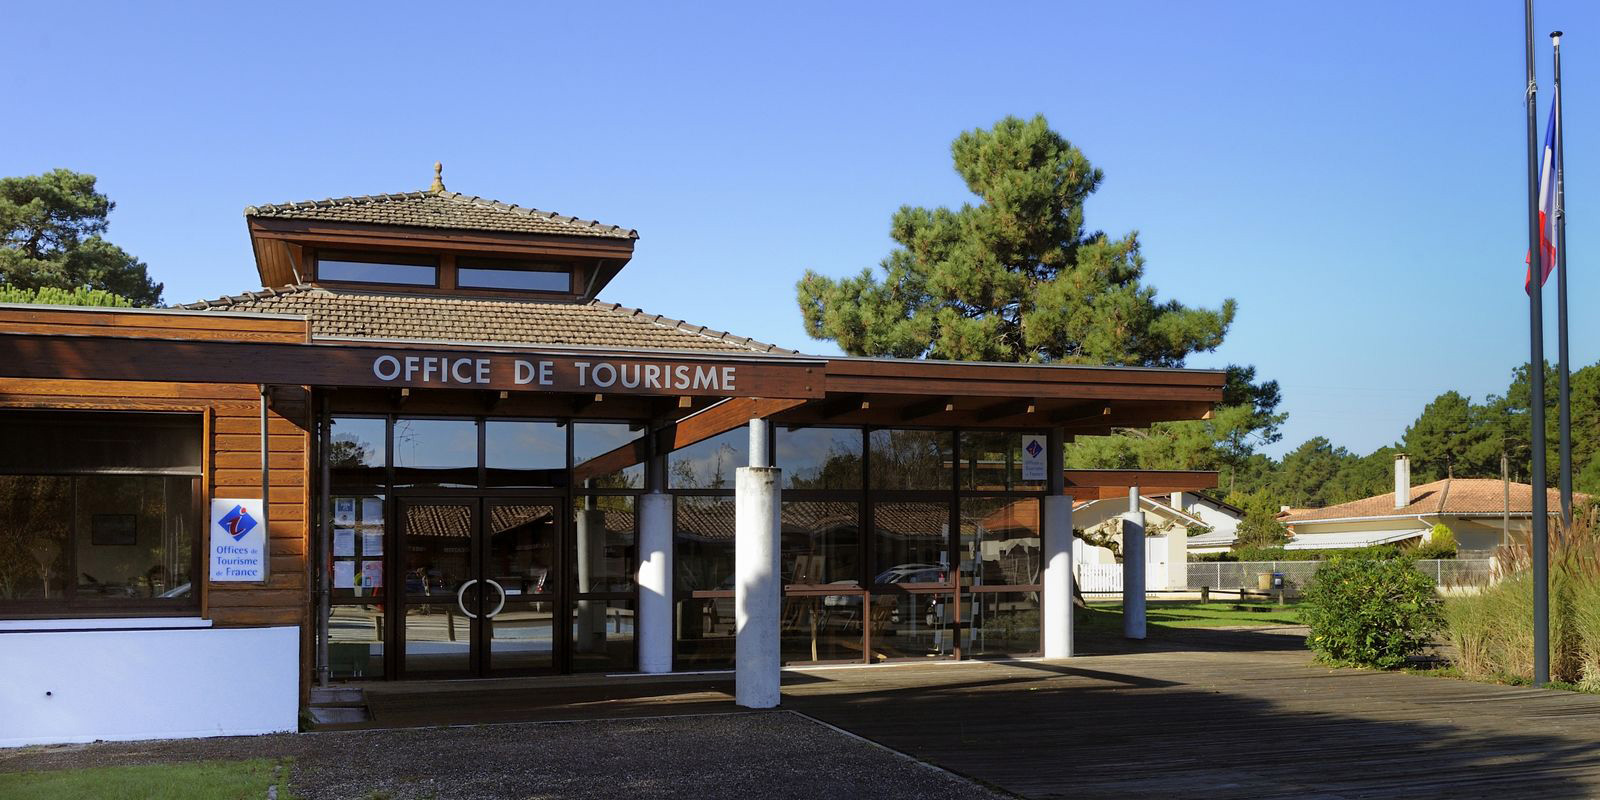 Office de tourisme l ge cap ferret - Office du tourisme de lege cap ferret ...